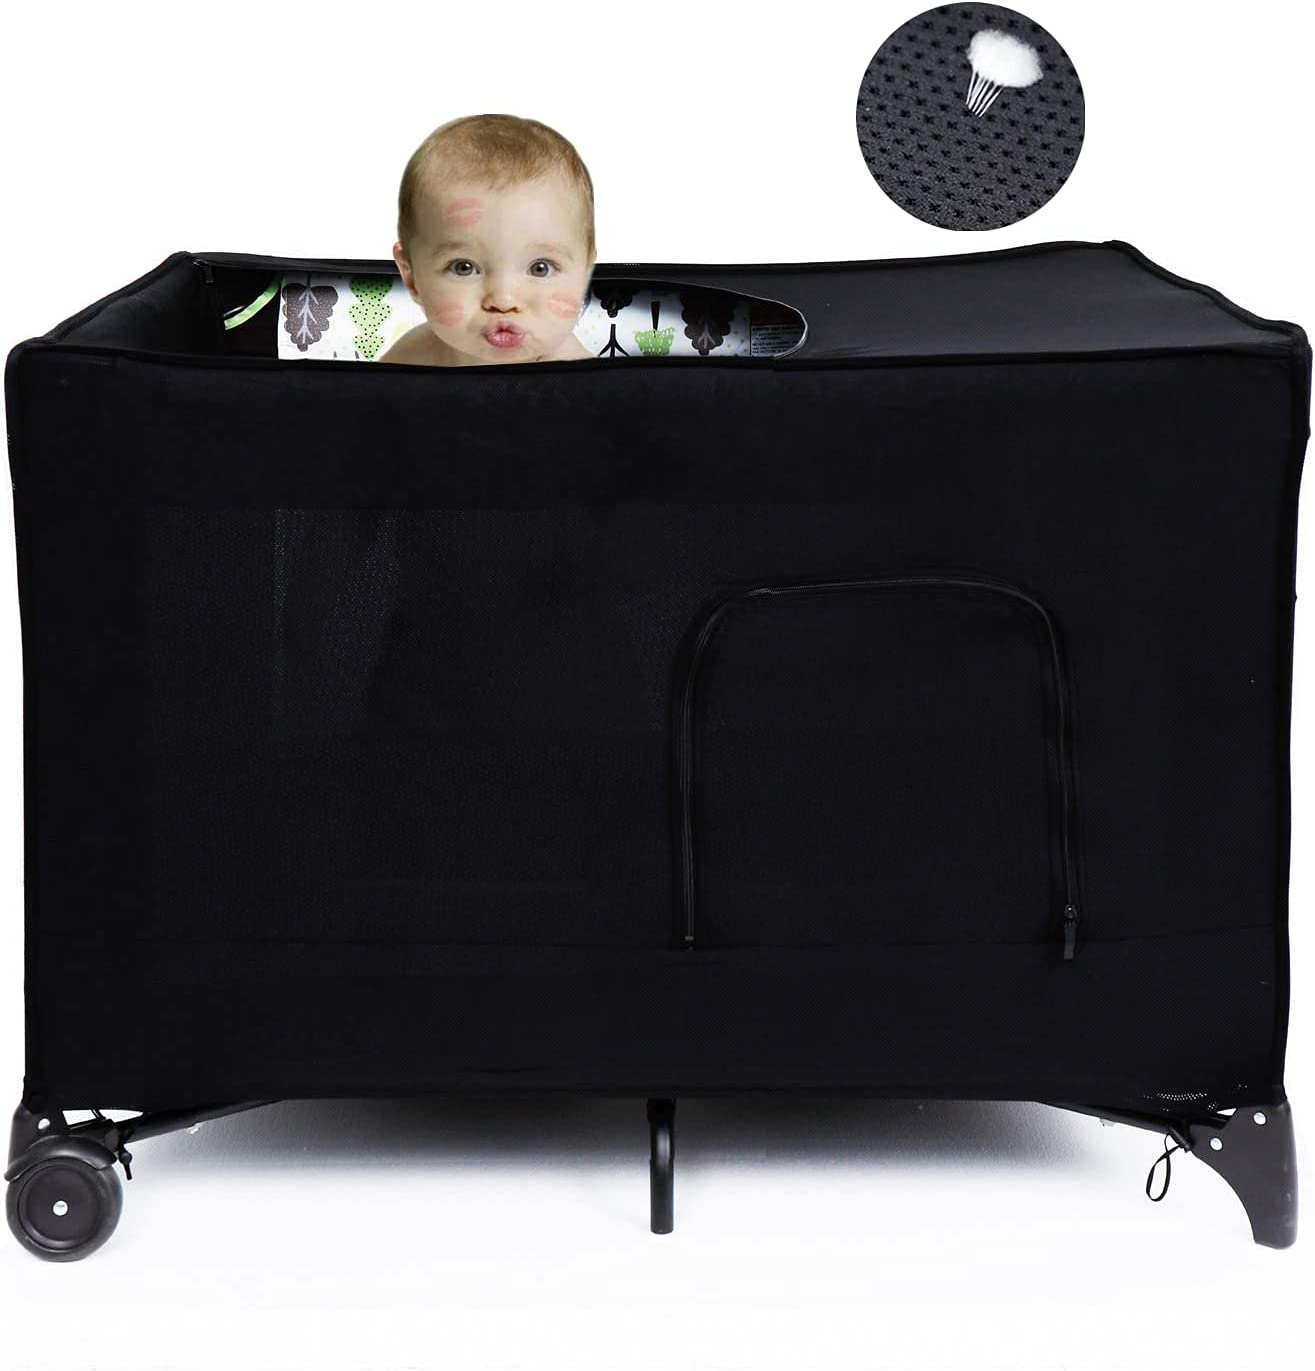 Travel Crib Blackout Cover, Portable Crib Darkening Canopy Cover for Pack and Play, Stretchy Breathable Crib Tent for Indoor or Outdoor Playard.